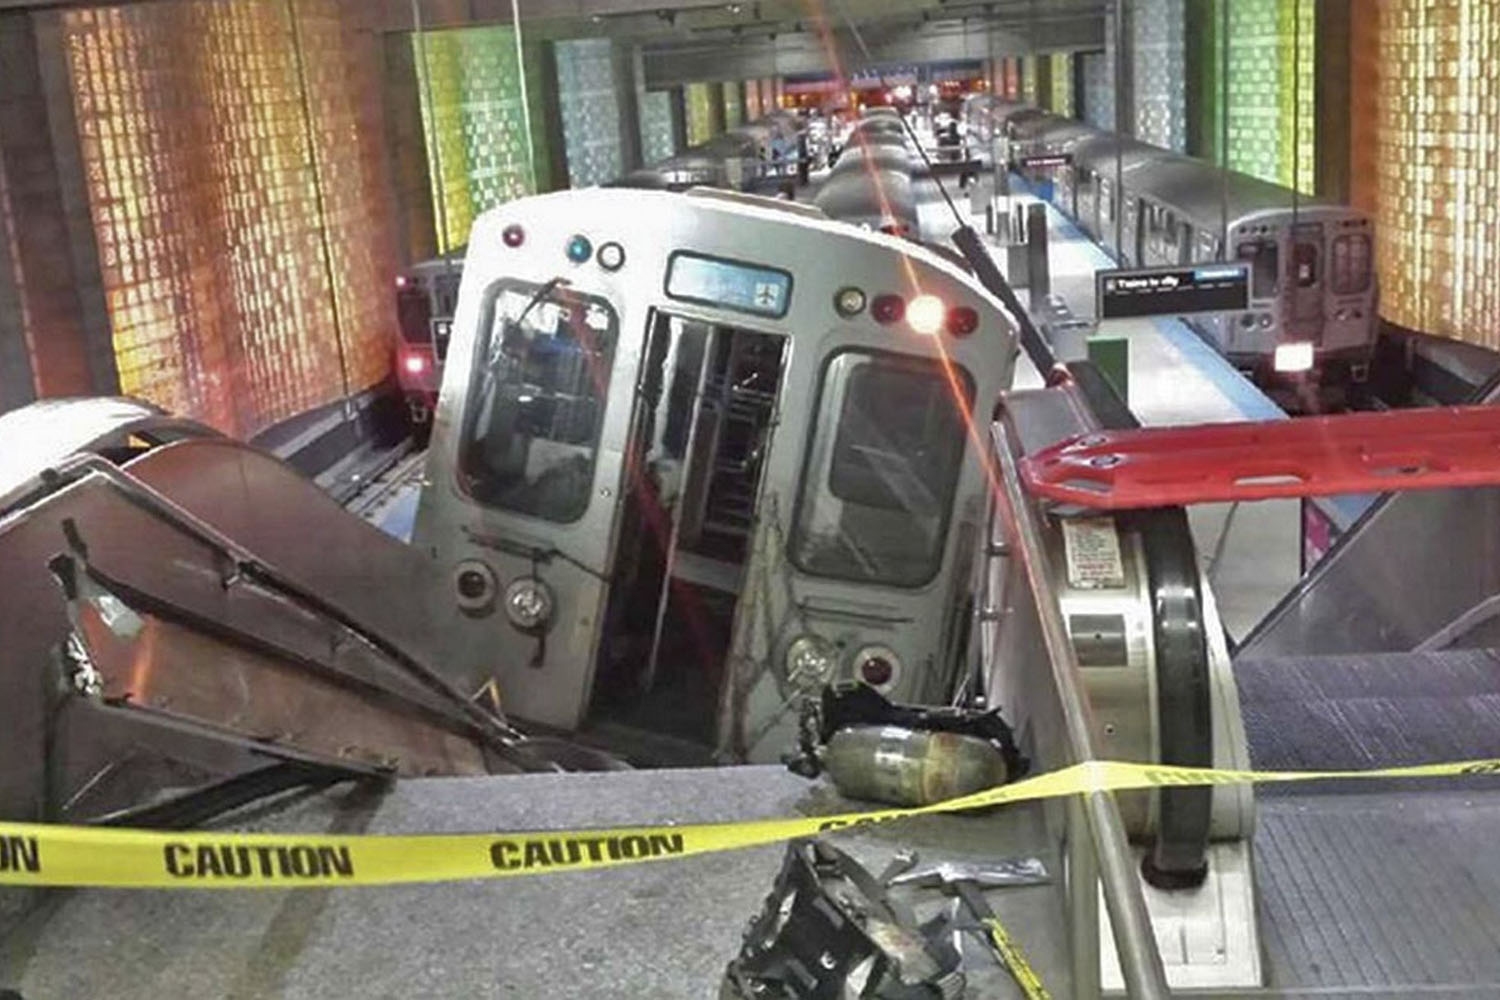 Mar. 24, 2014.                                A handout photo shows a derailed commuter train resting on an escalator at O'Hare international airport in Chicago Thirty-two people were injured after the train derailed and hit a platform early on Monday.